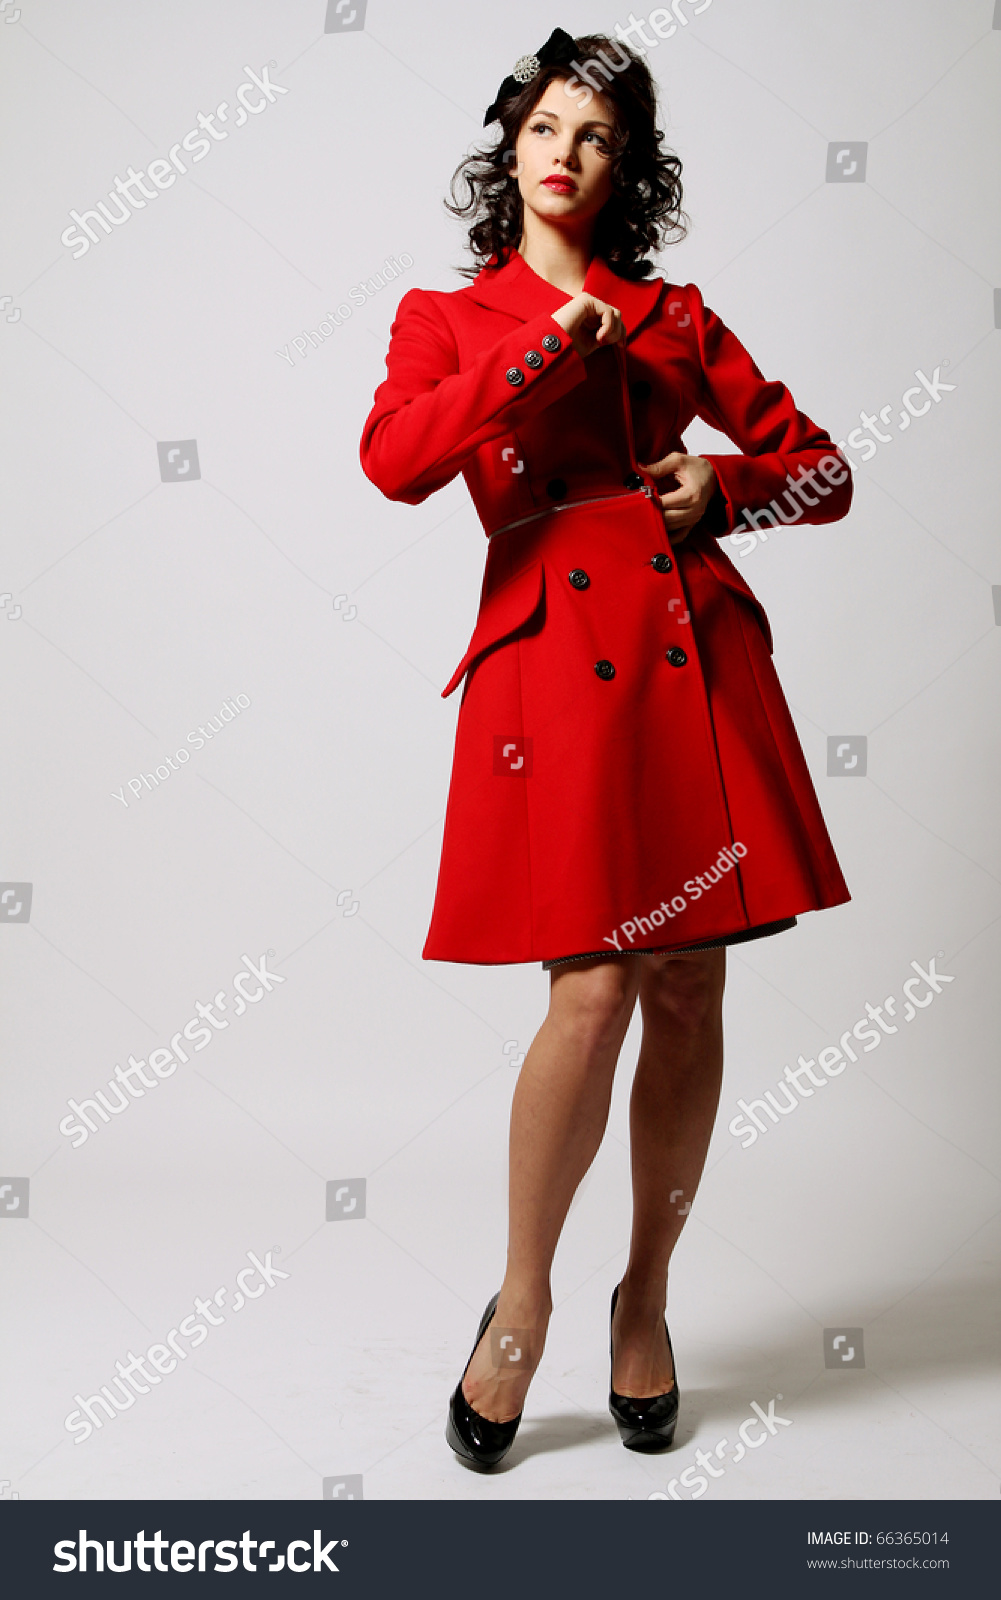 Beautiful Young Woman Red Coat Posing Stock Photo 66365014